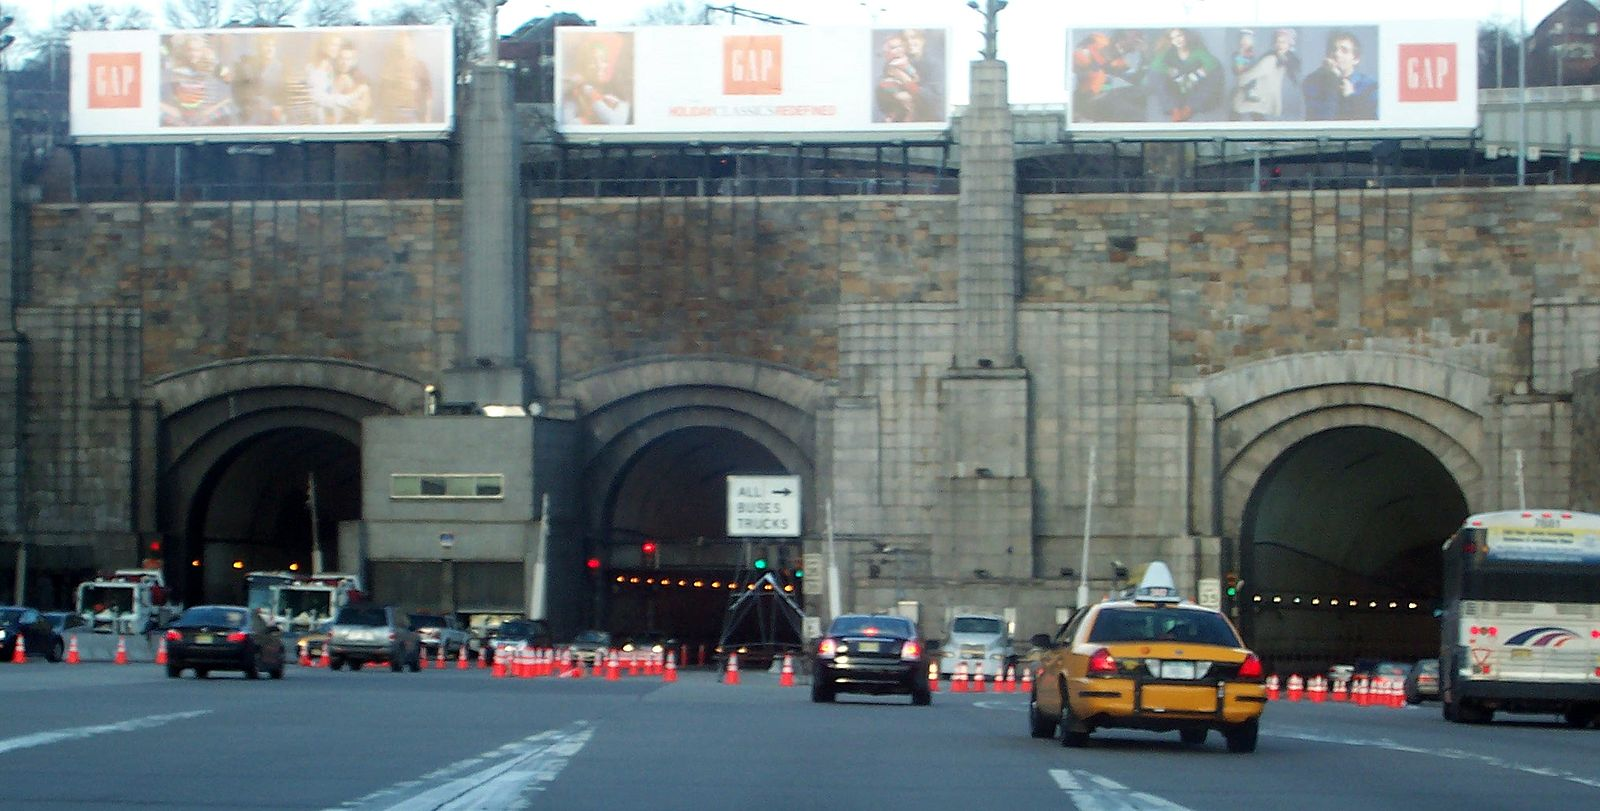 https://fasterskier.com/wp-content/blogs.dir/1/files/2014/04/Lincolntunnel.jpg